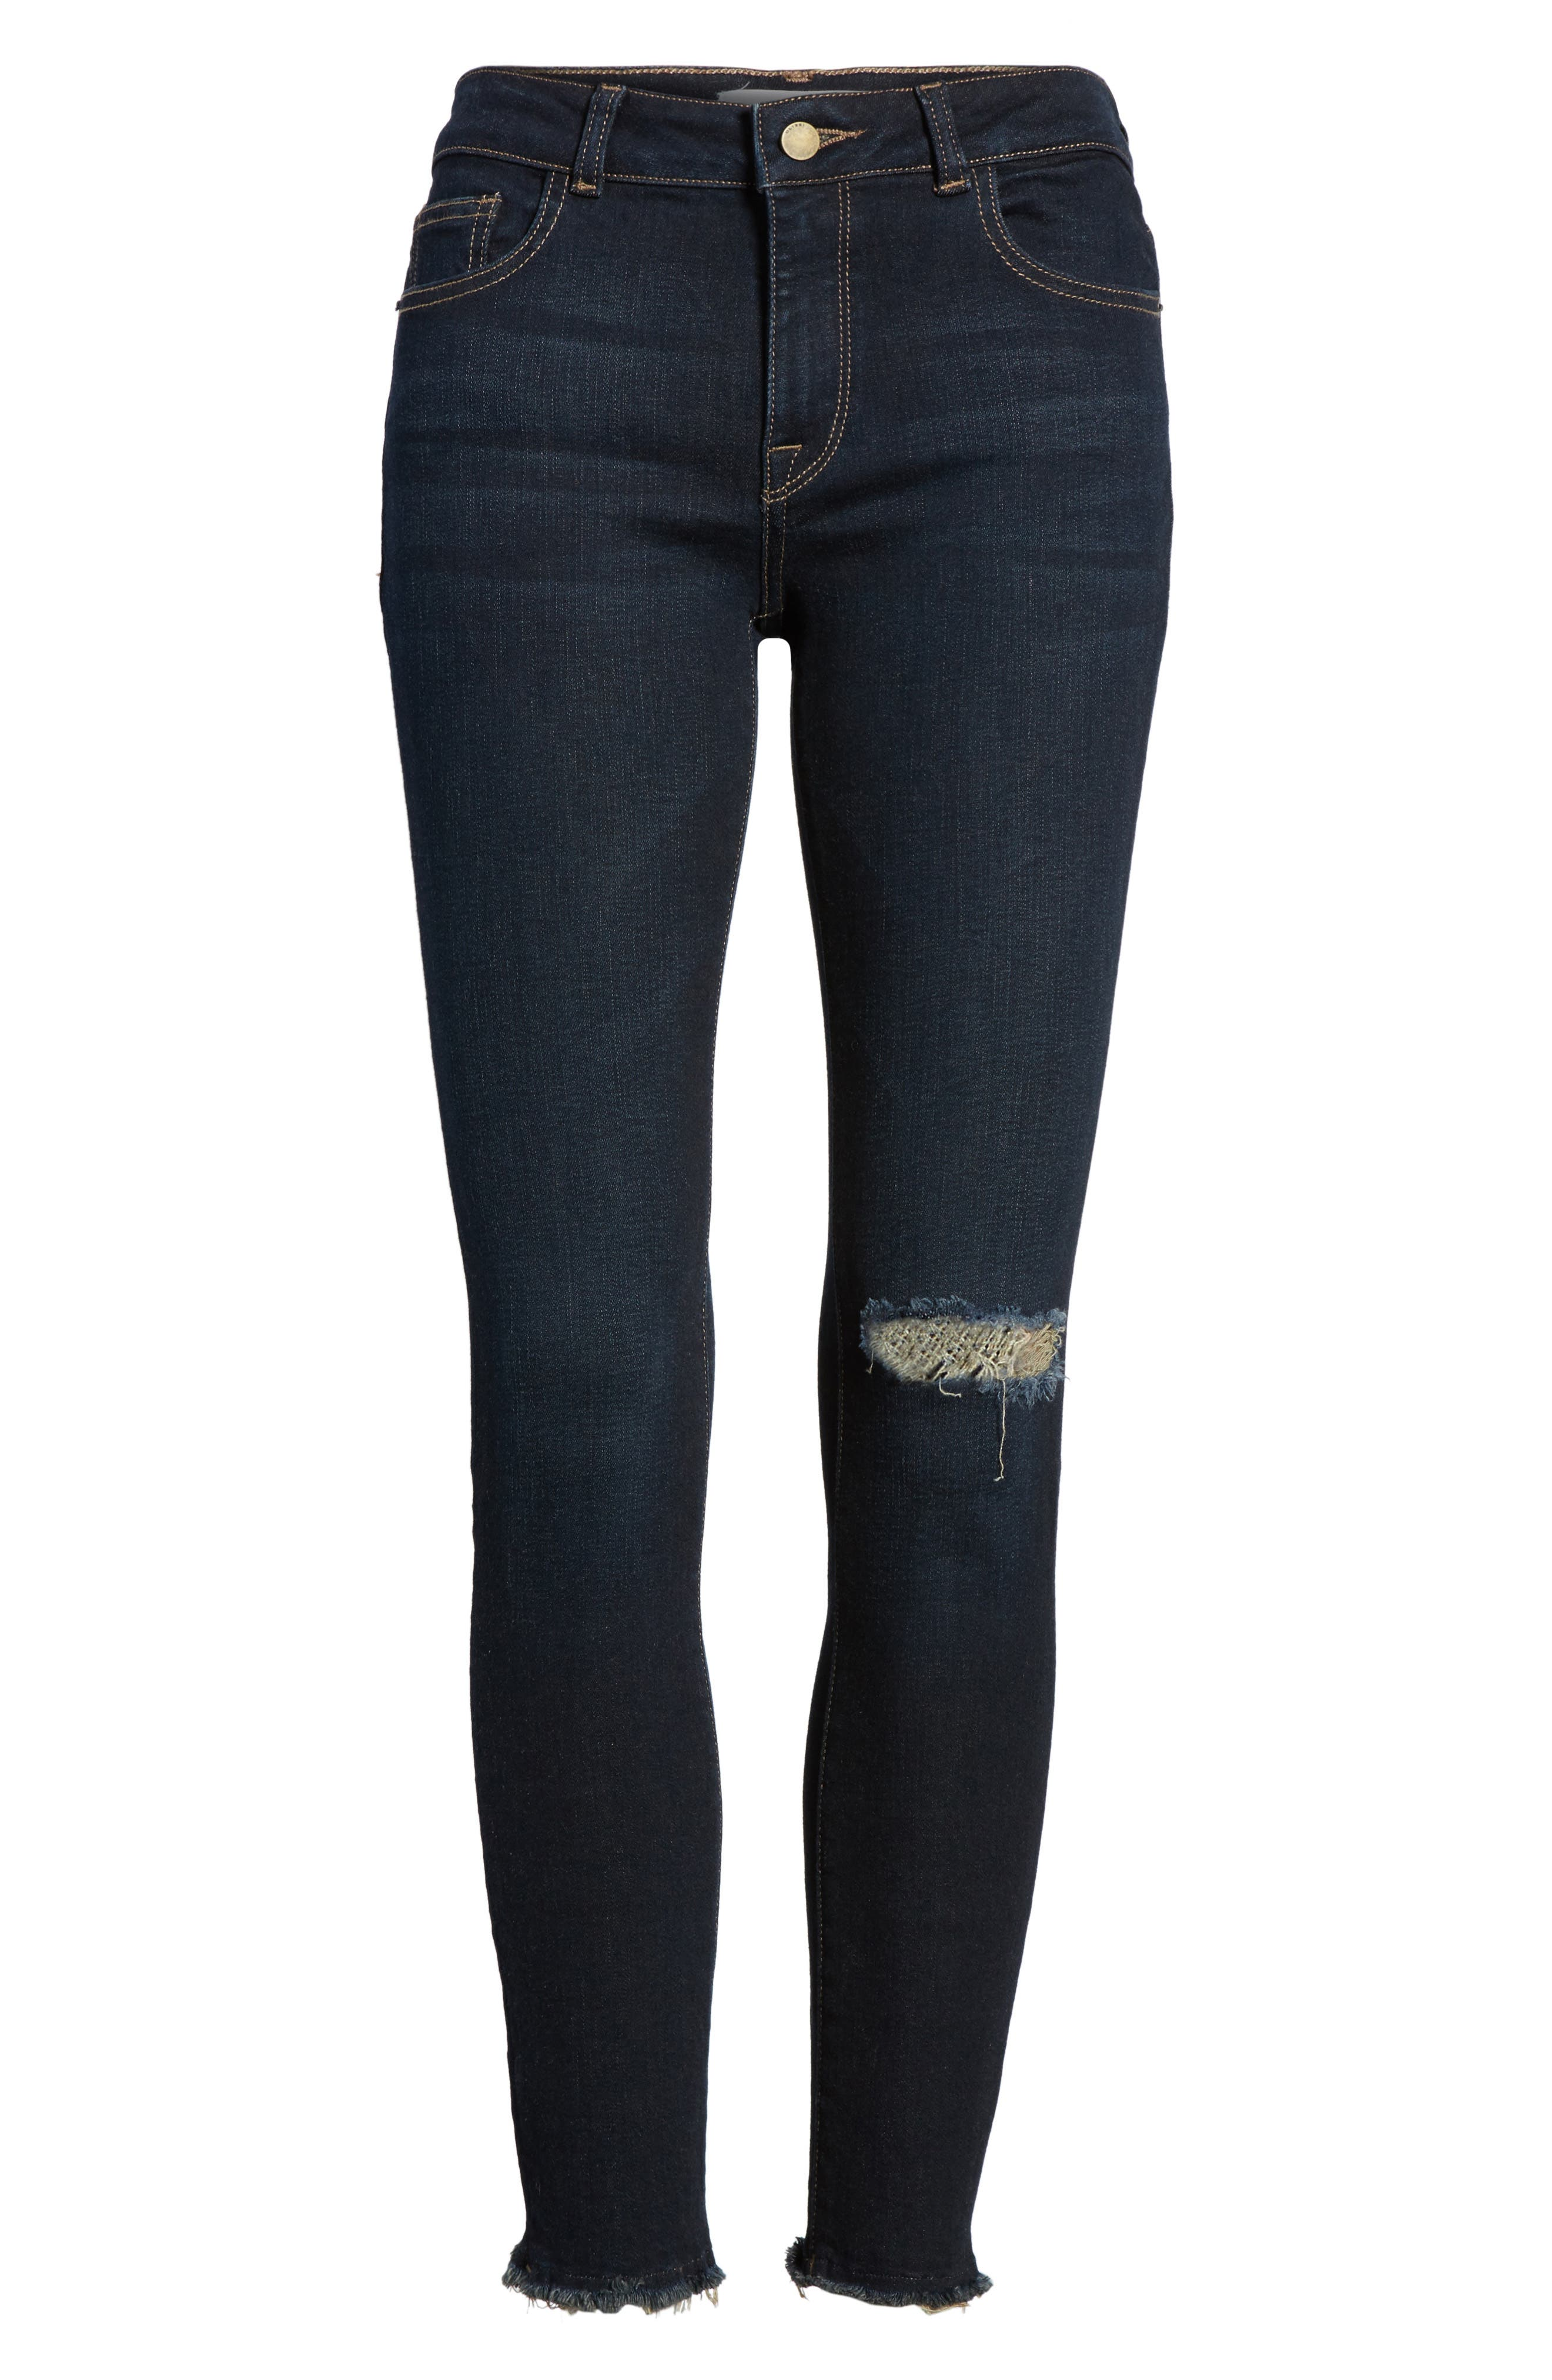 Margaux Instasculpt Ripped Ankle Skinny Jeans,                             Alternate thumbnail 6, color,                             025